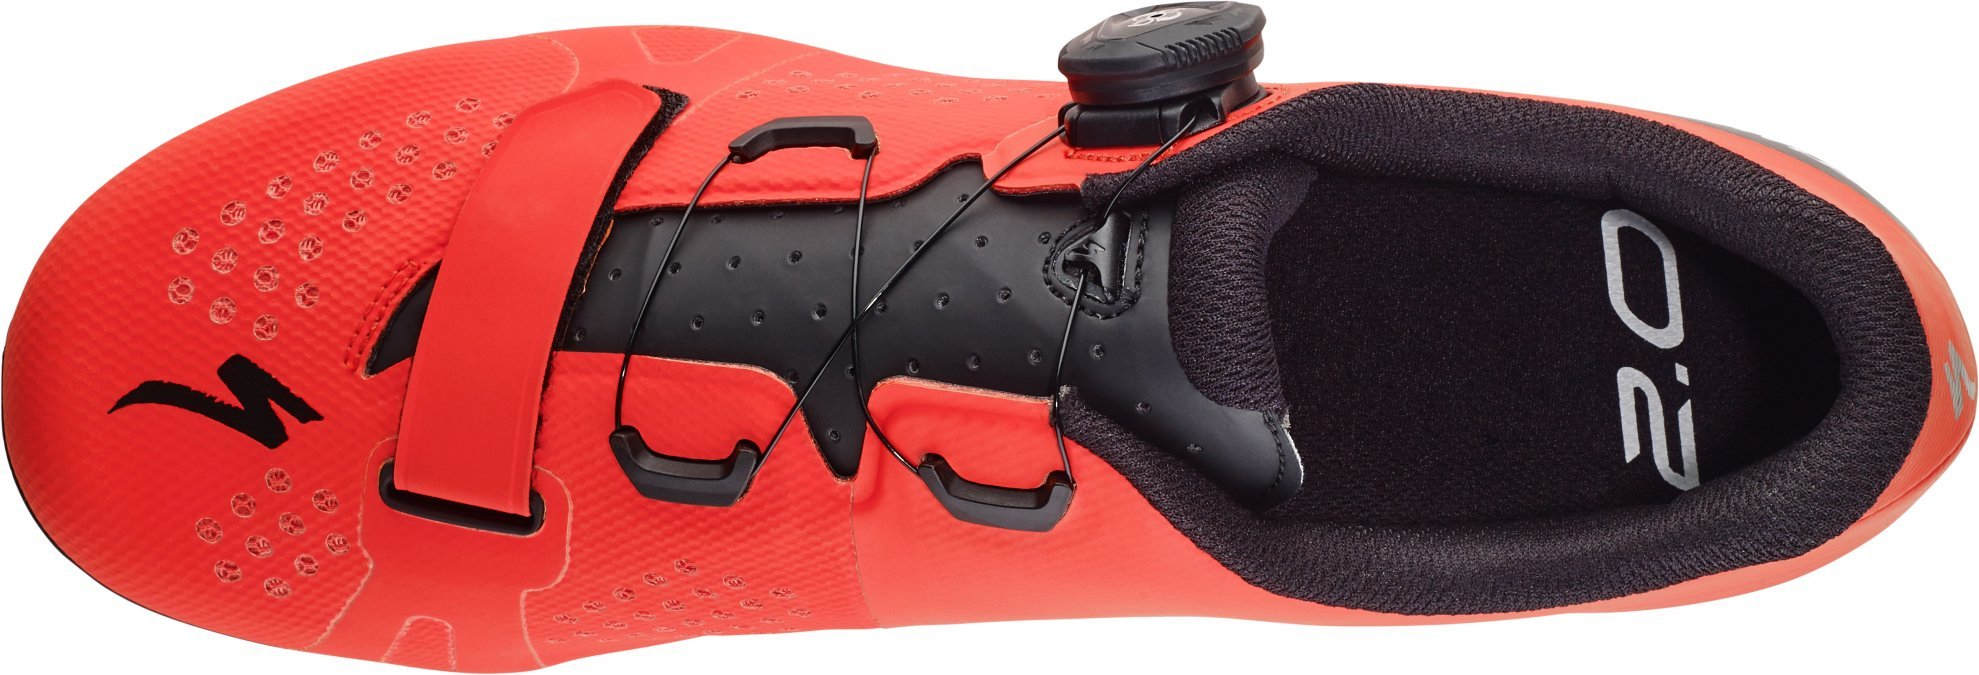 Specialized Torch 2.0 cycling shoes